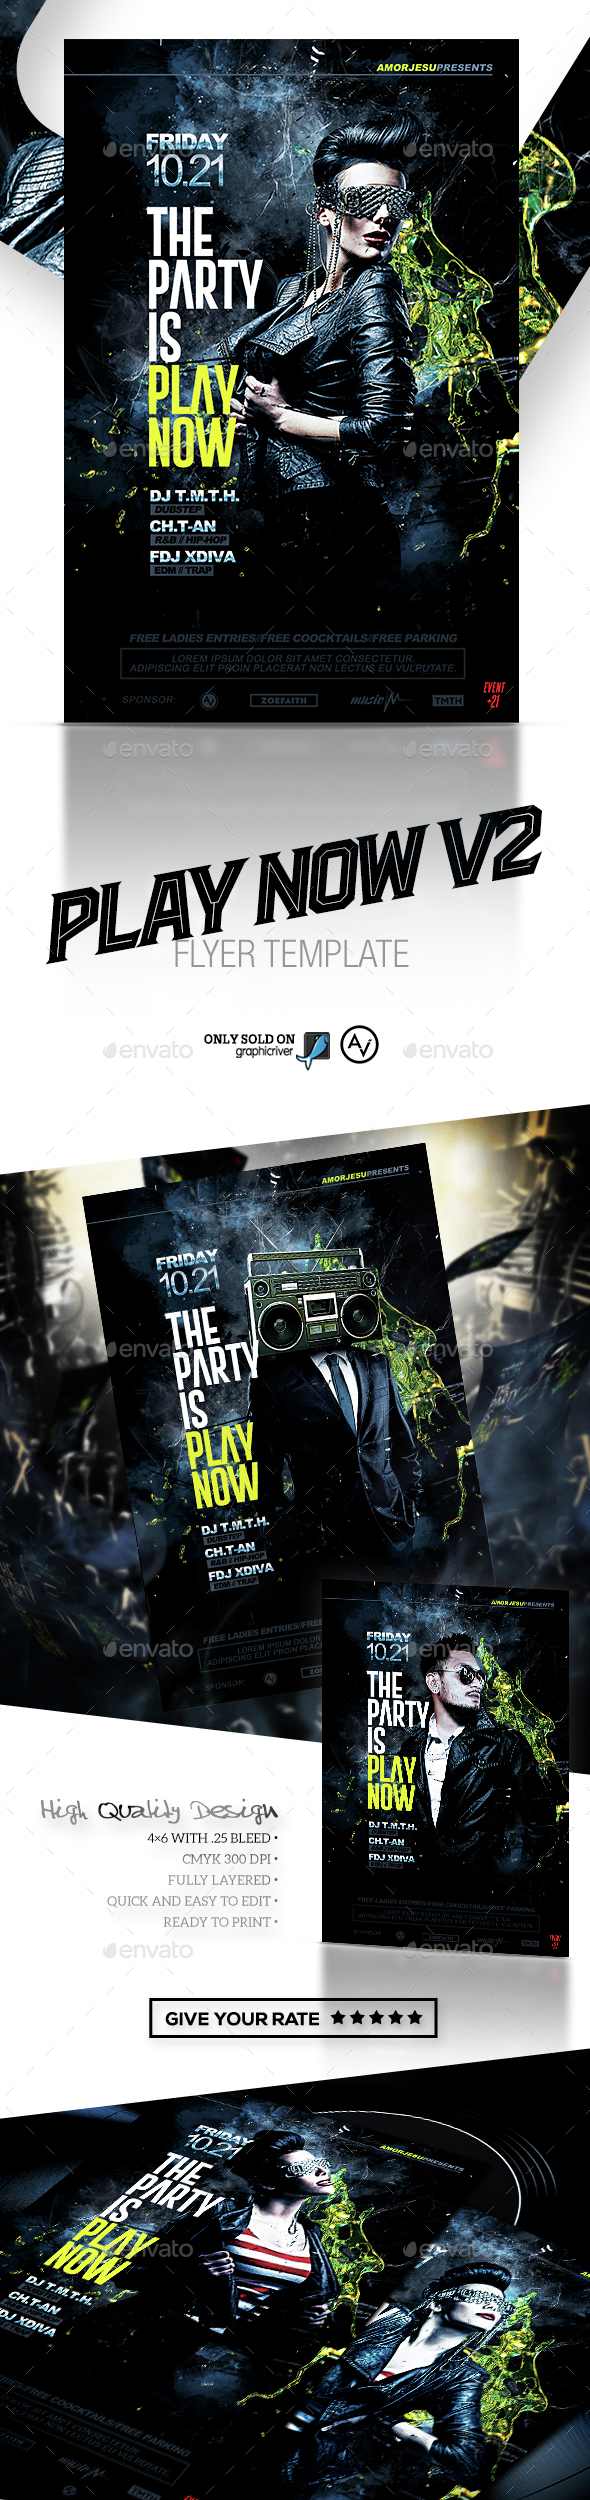 Play Now Flyer Template V2 By Amorjesu Graphicriver